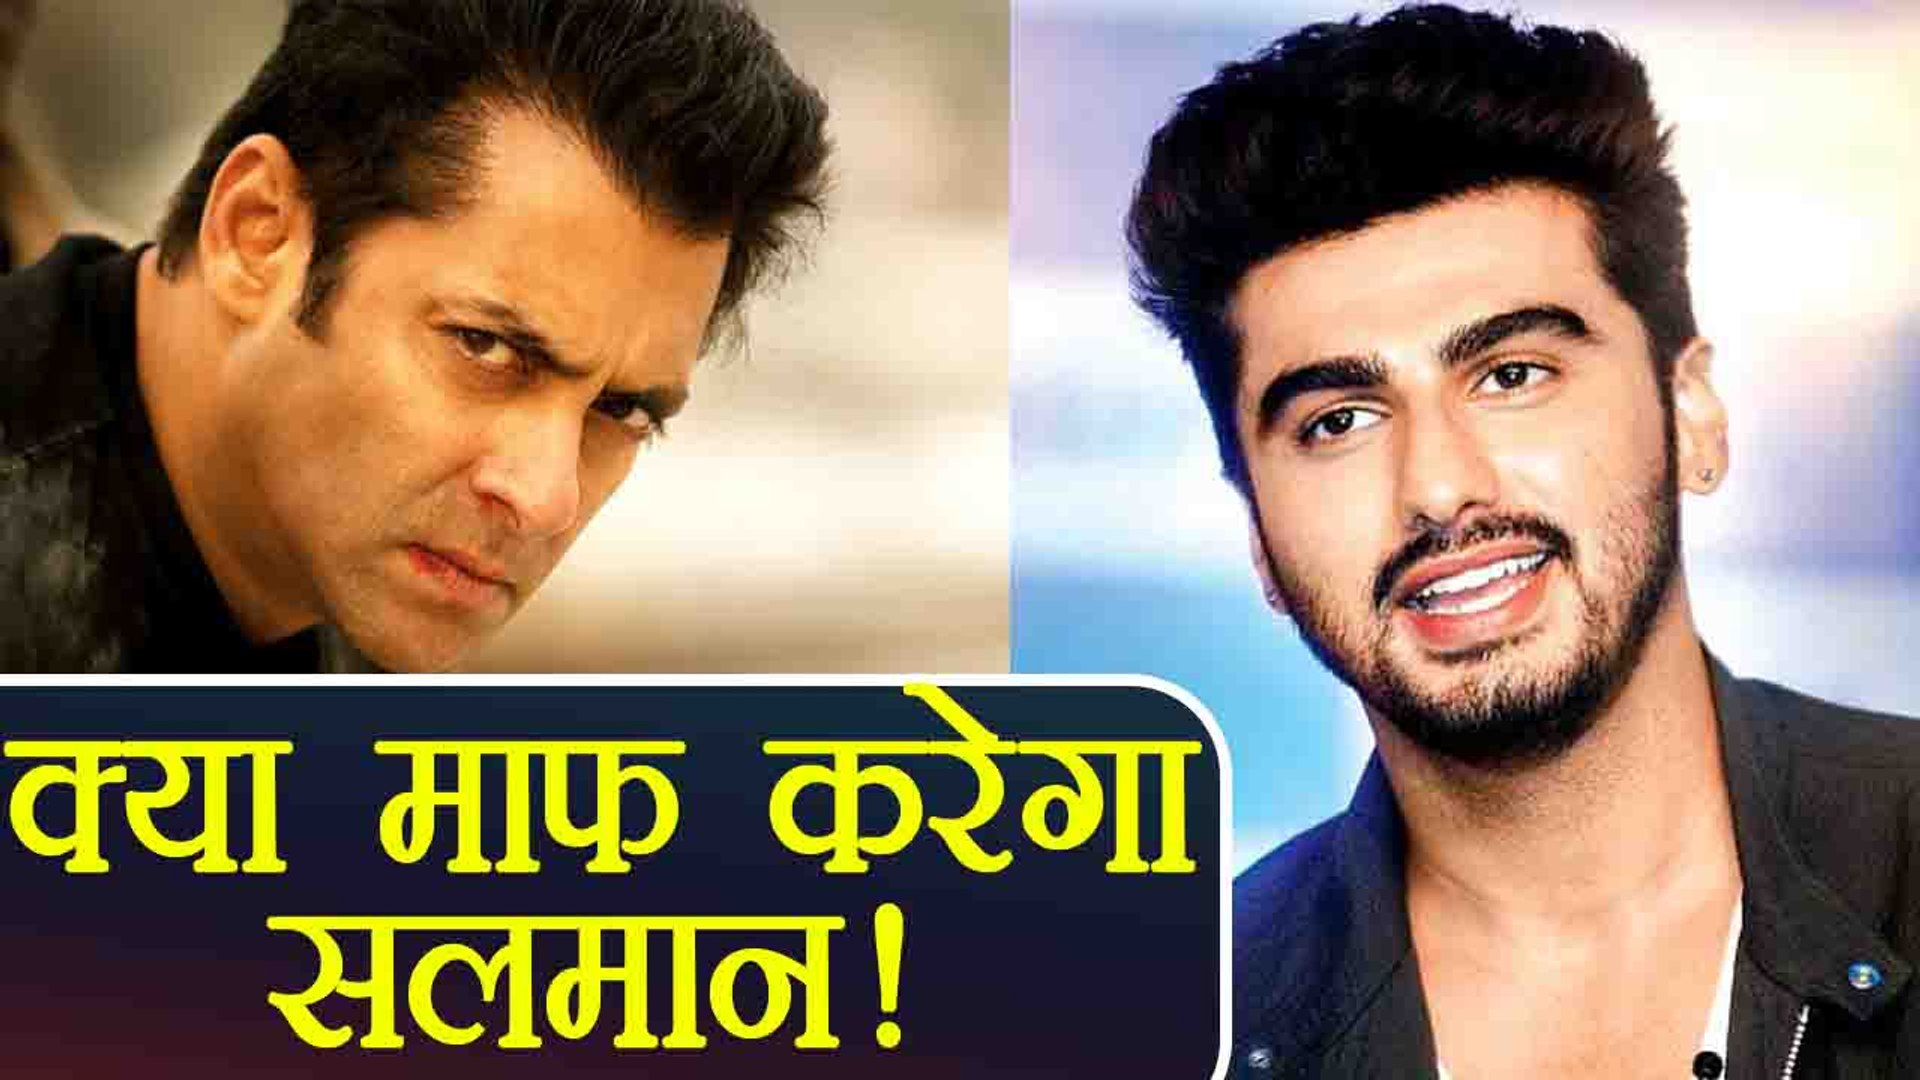 Salman Khan: Arjun Kapoor is trying to make PEACE with Salman | FilmiBeat